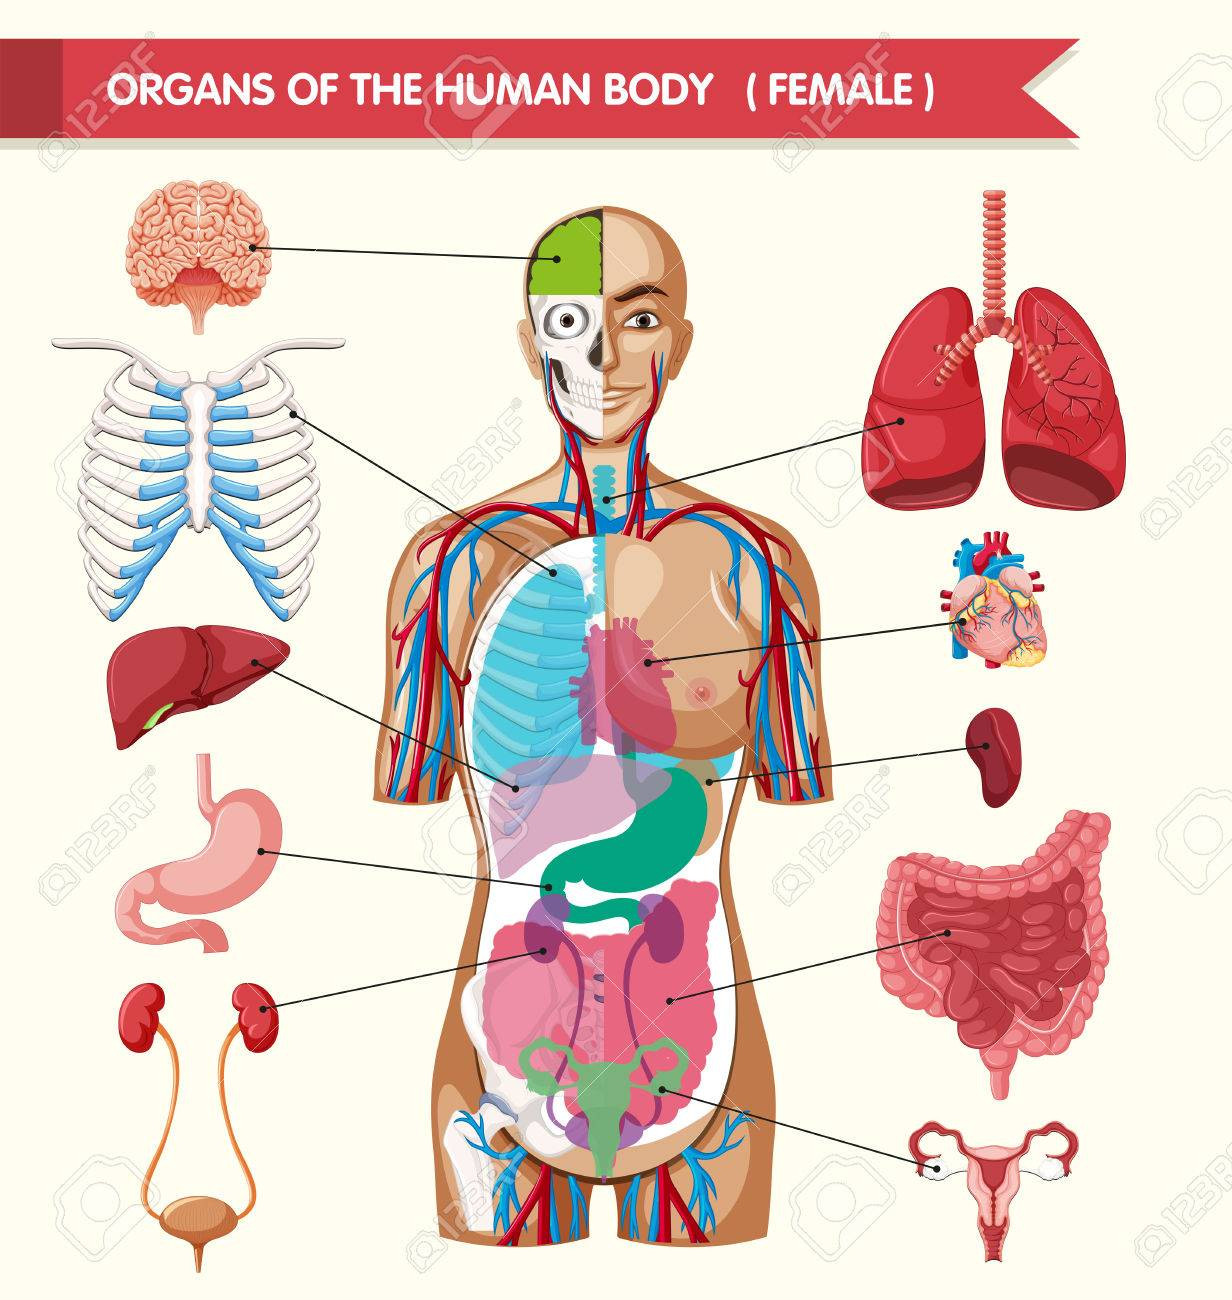 Organs Of The Human Body Diagram Illustration Royalty Free Cliparts